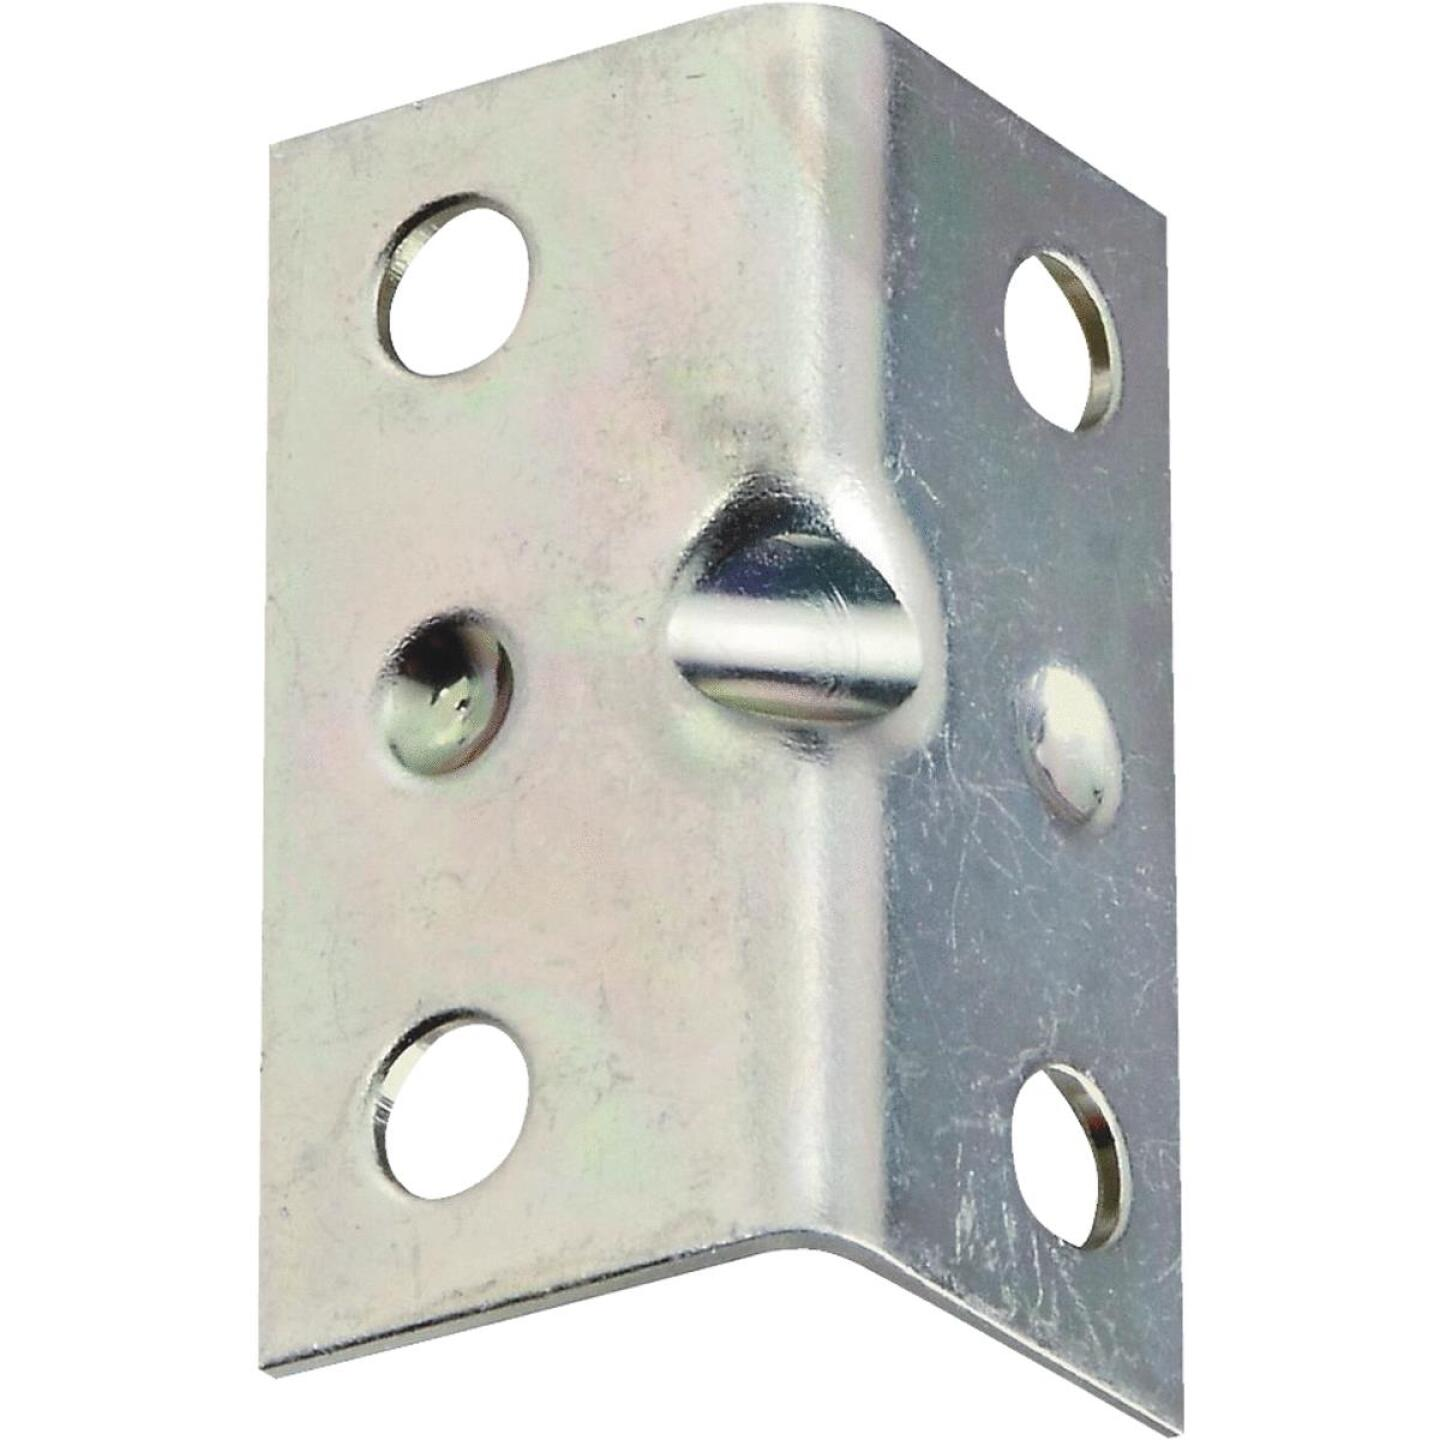 National Catalog V113 Series 1-1/2 In. x 3/4 In. Zinc Corner Brace (4-Count) Image 1